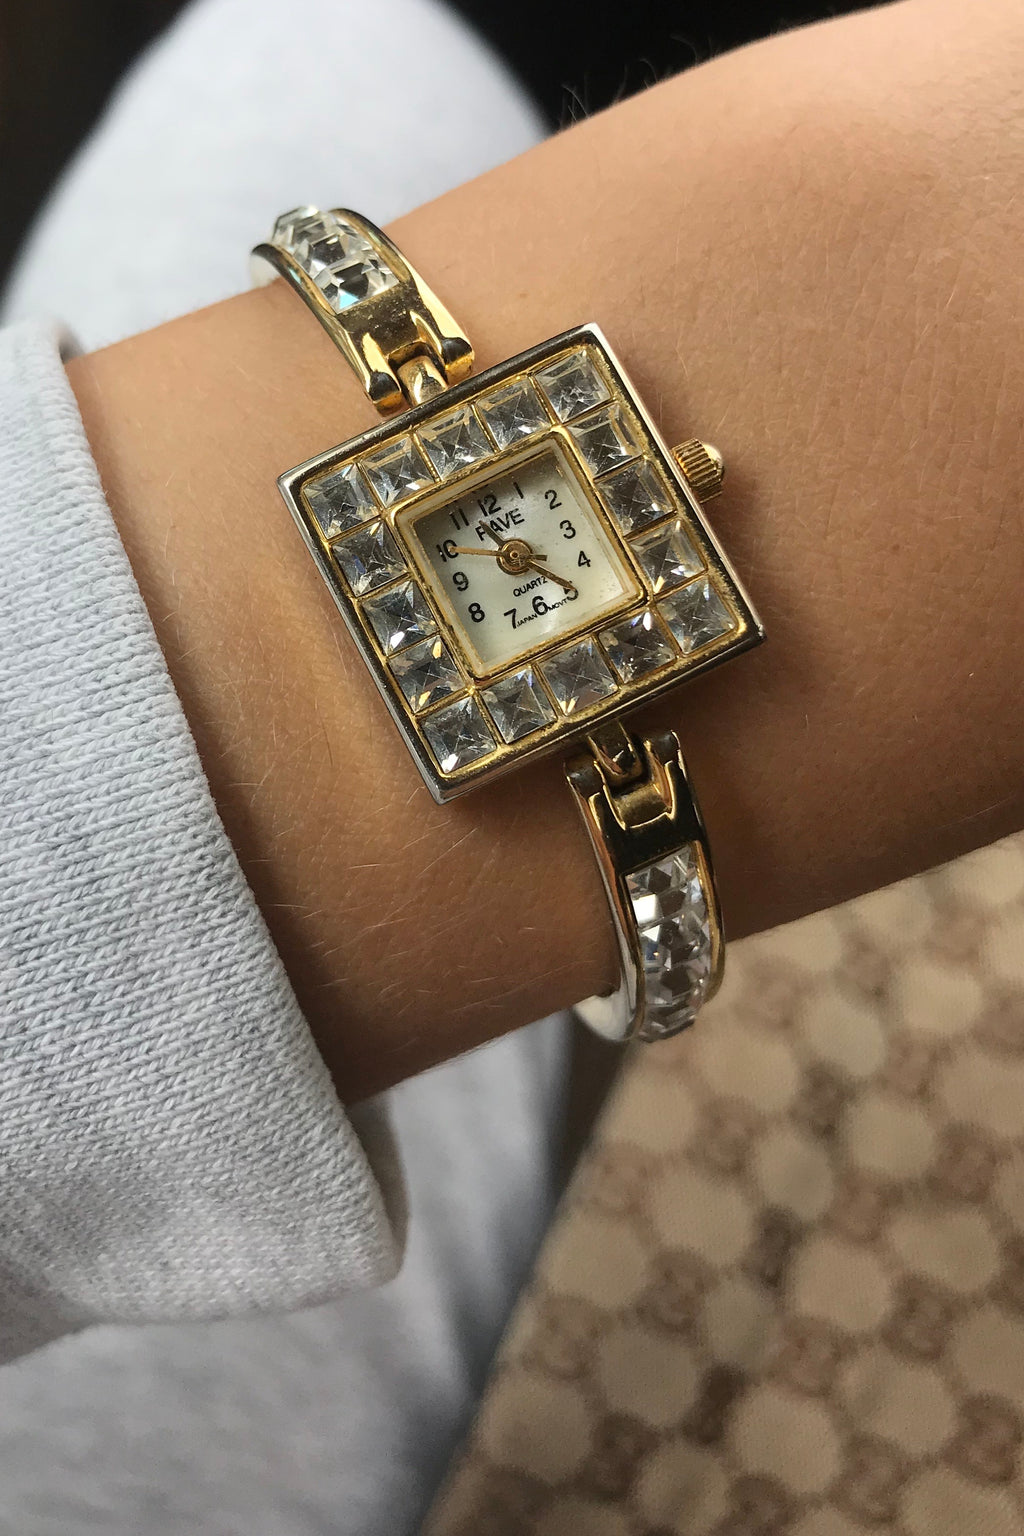 Vintage 1990s Gold Tone Ladies Quartz Wrist Watch With Gold Tone Link Strap  - By Rave